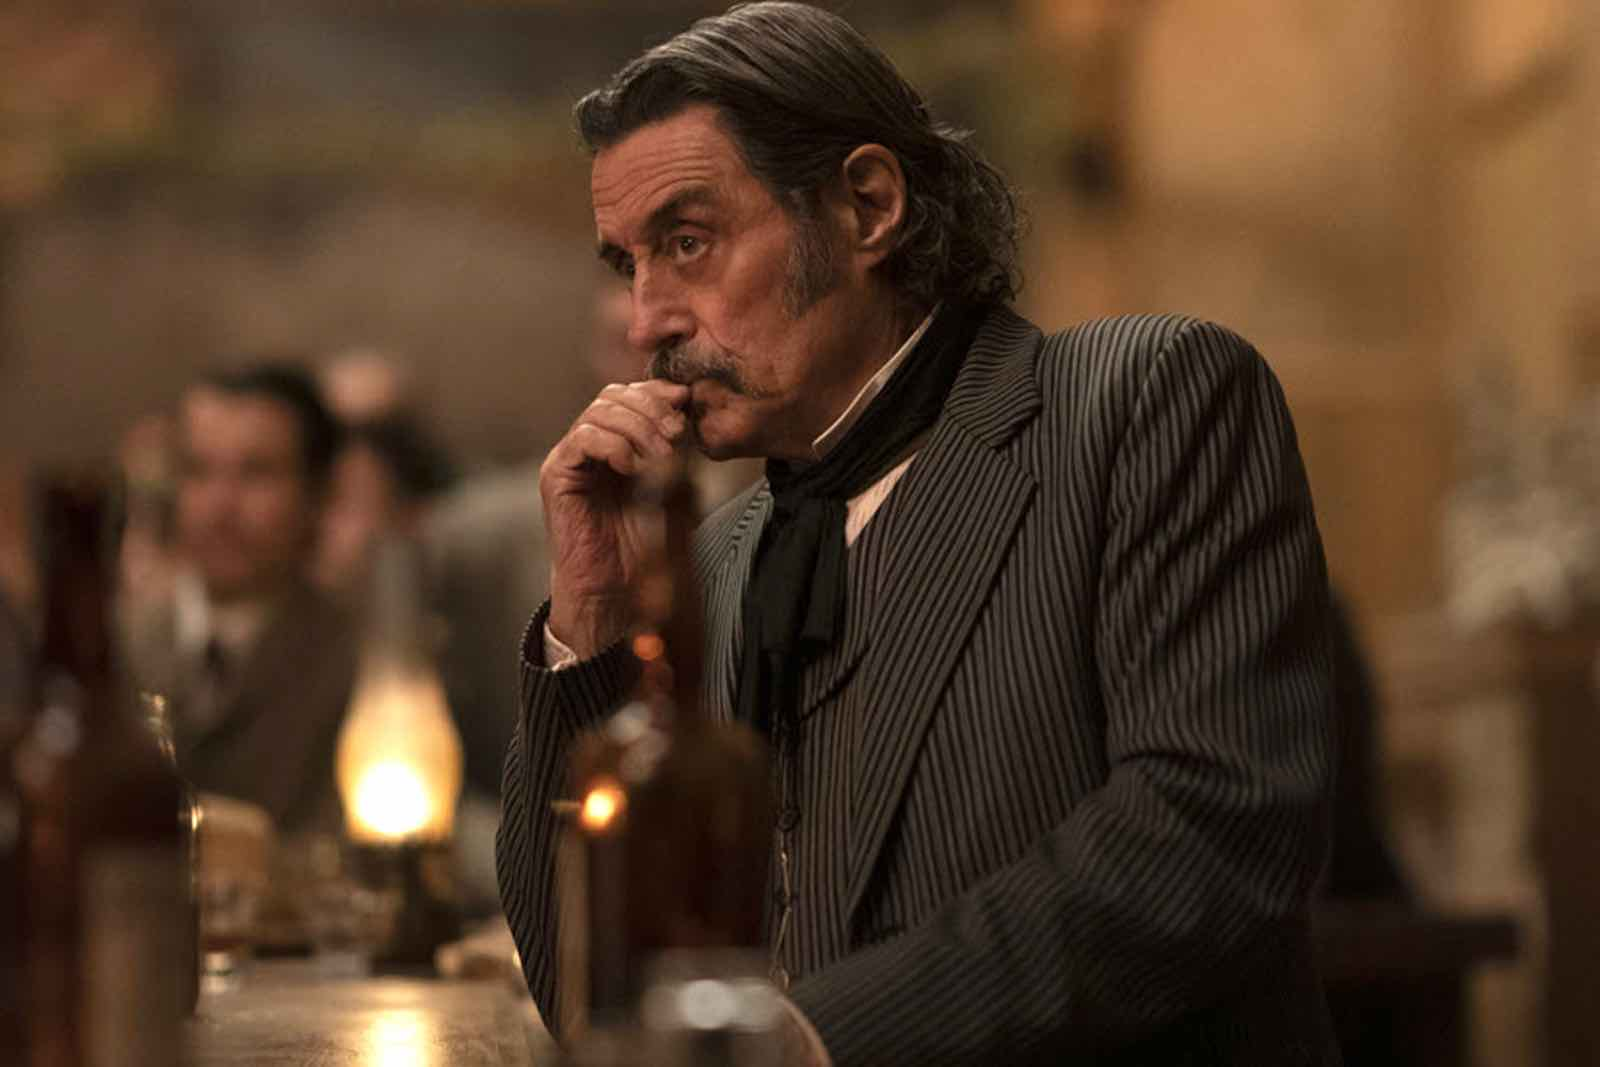 After years of rumors and speculation, HBO has finally dropped the trailer for the 'Deadwood' movie premiering later this month.